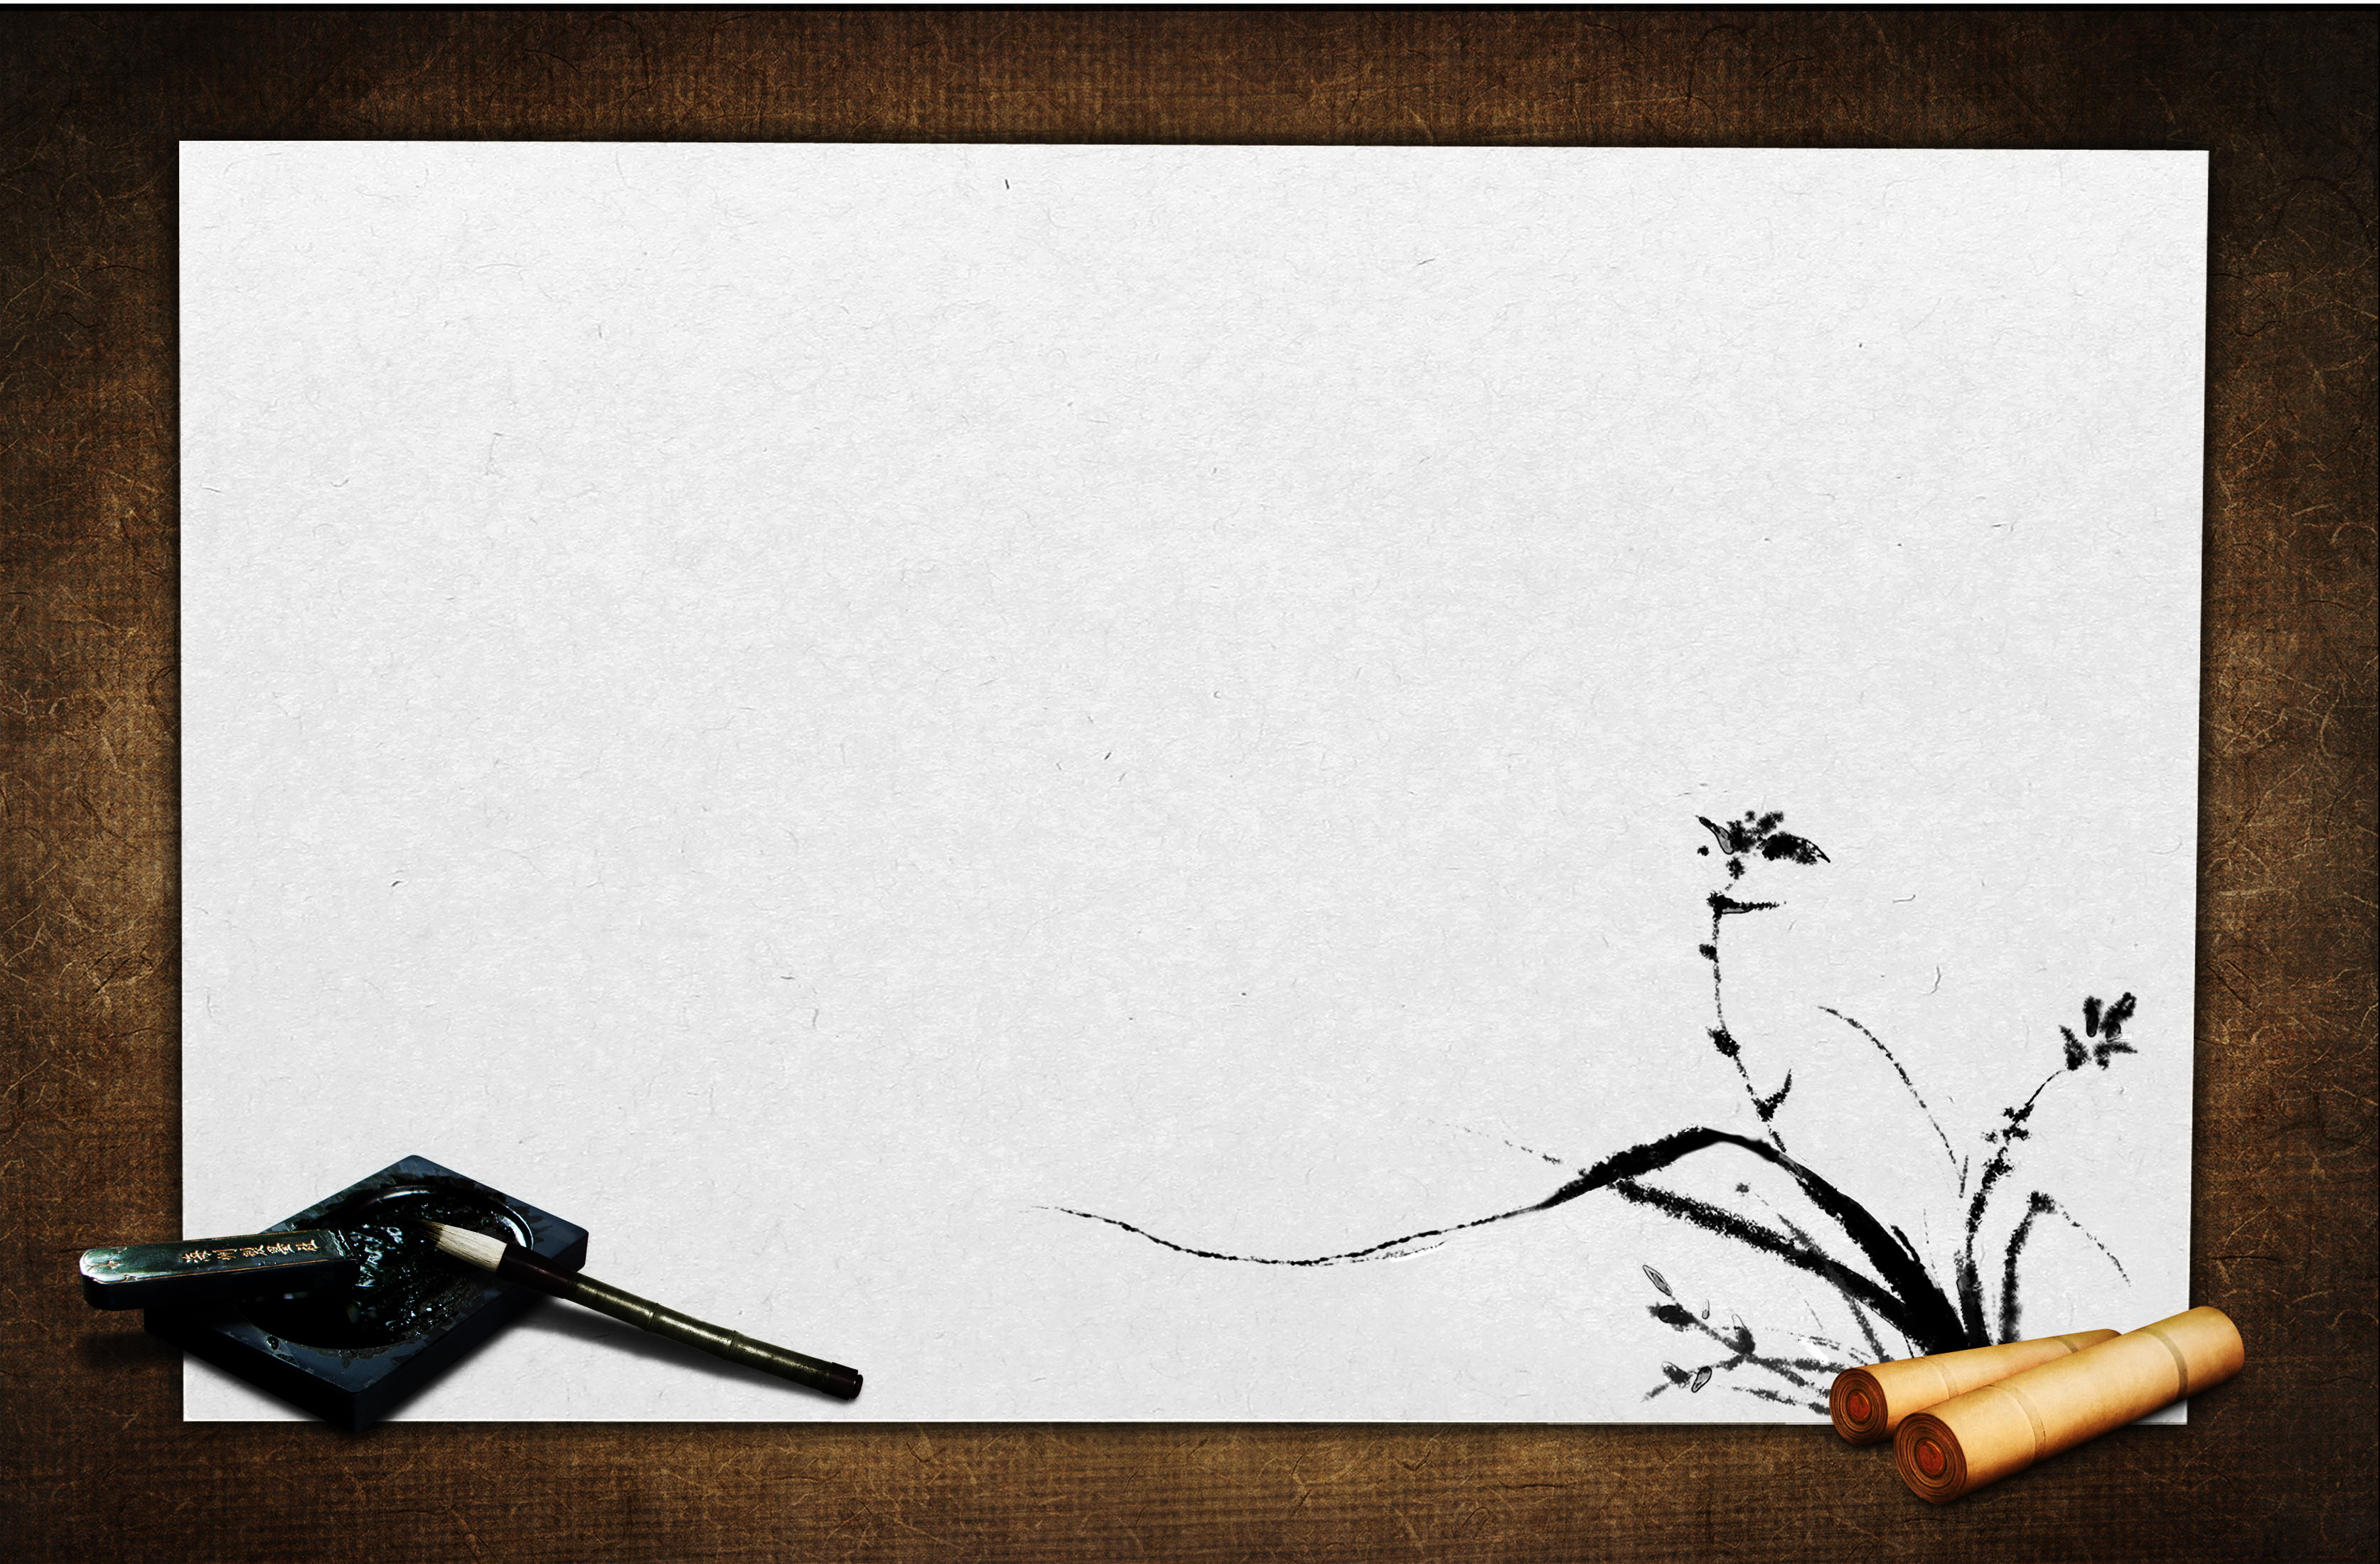 Calligraphy Brush Background Template Calligraphy